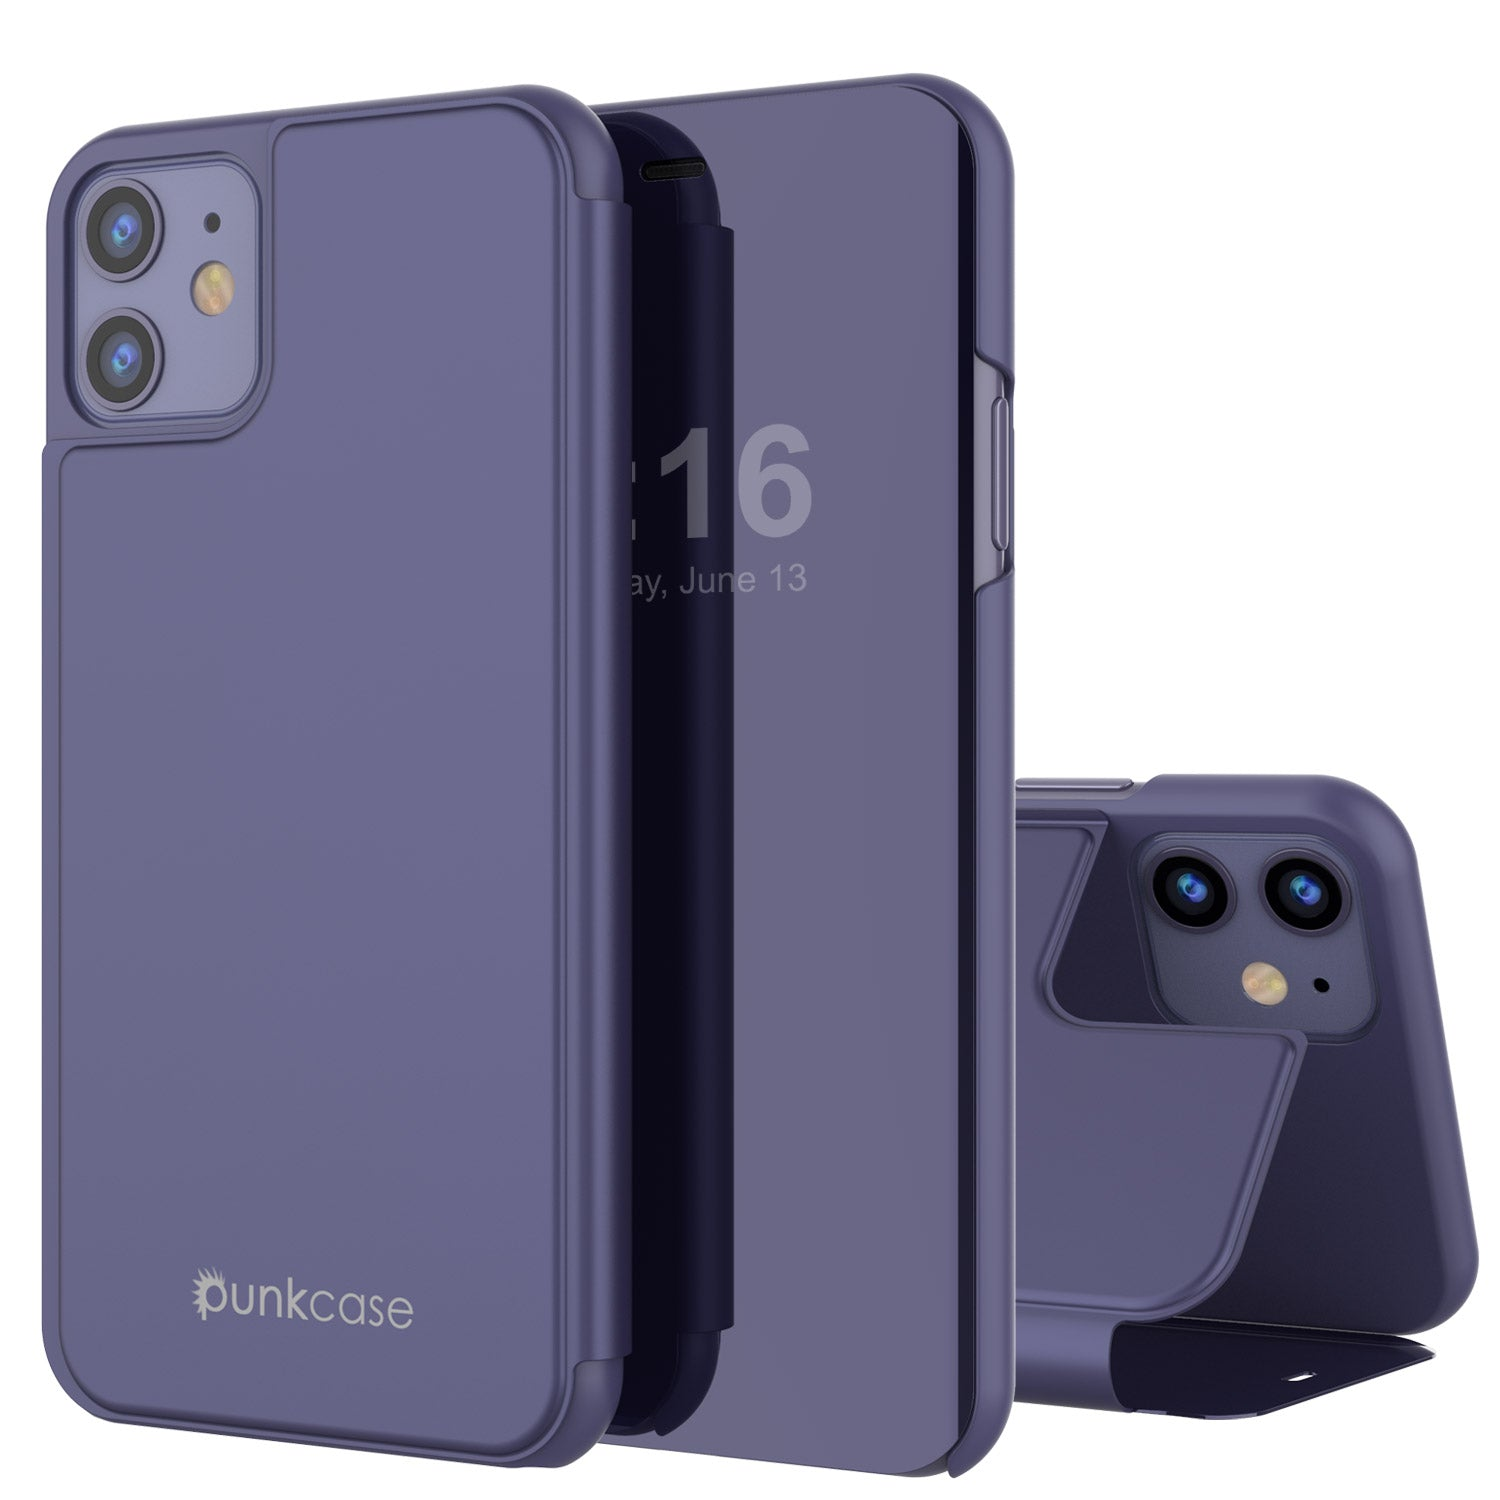 Punkcase iPhone 11 / XI Reflector Case Protective Flip Cover [Purple]